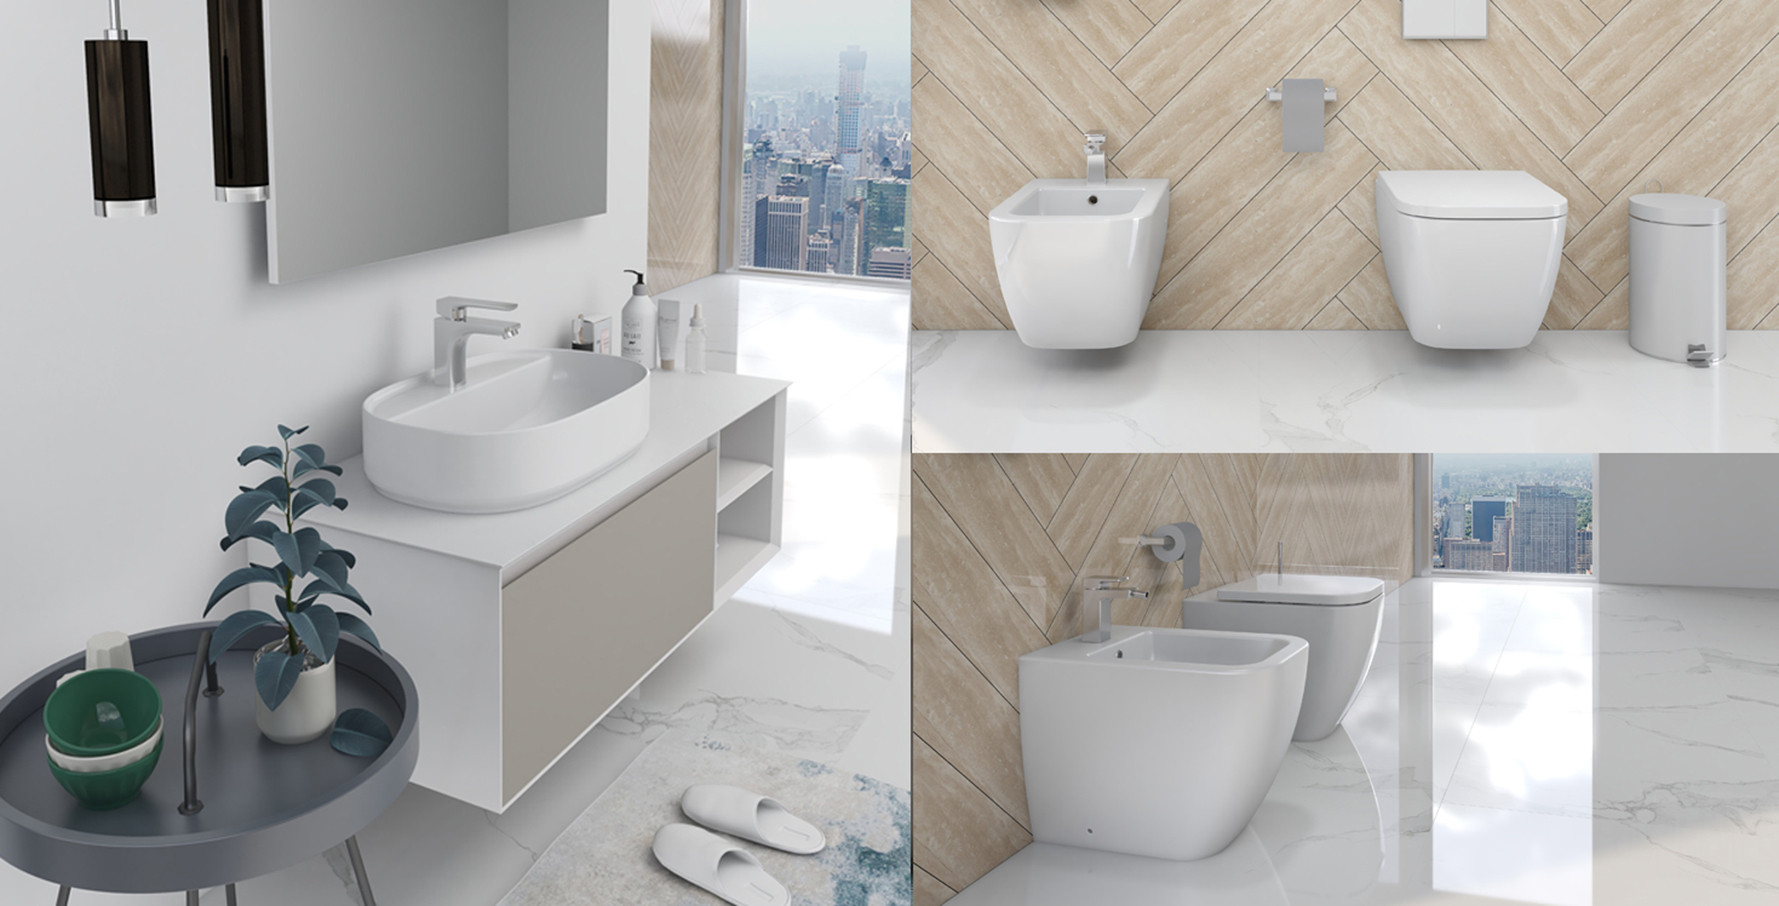 essence-furniture-sanitaryware-lifestyle.jpg